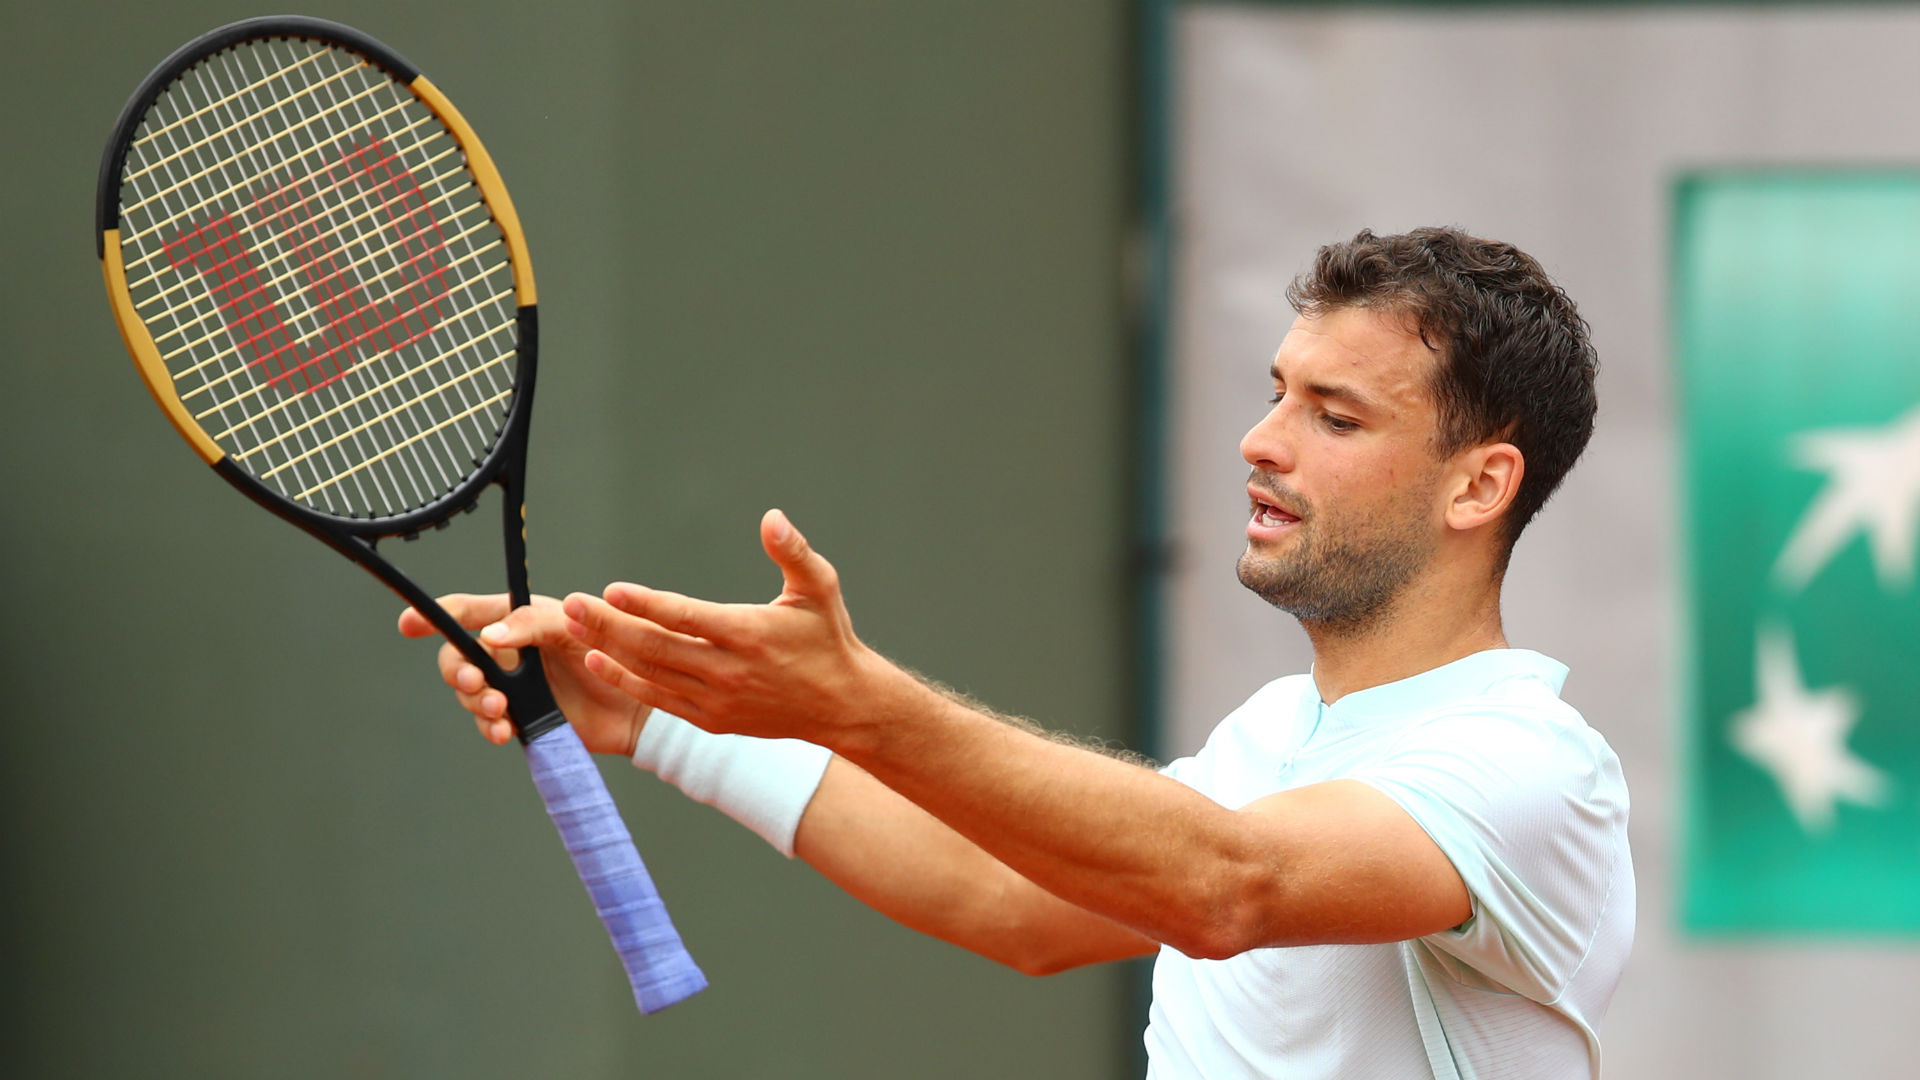 Fernando Verdasco downs Grigor Dimitrov in straight sets at French Open